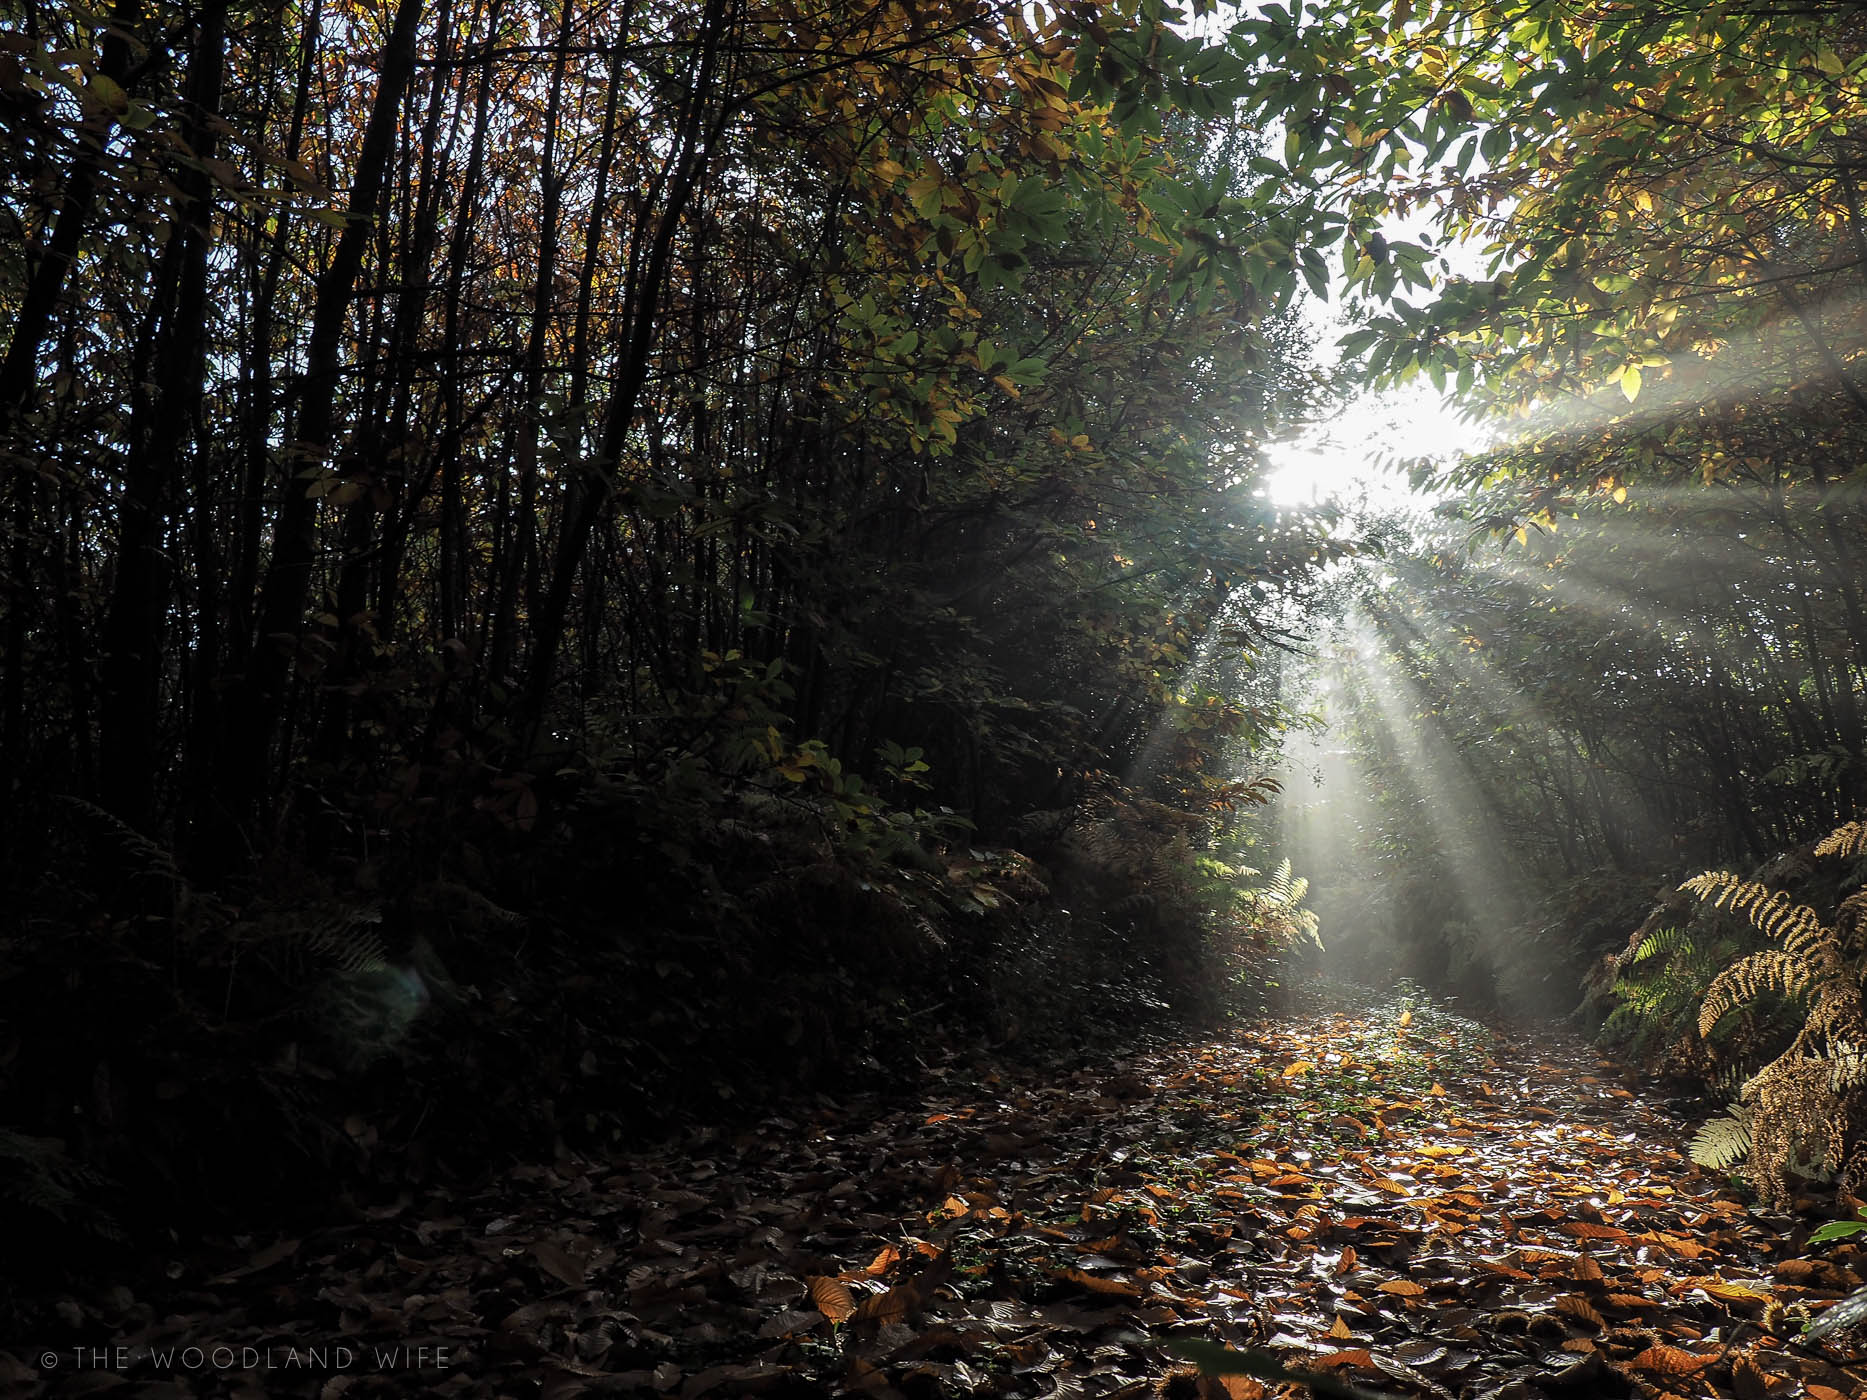 The Woodland Wife - Morning sunlight through the woods